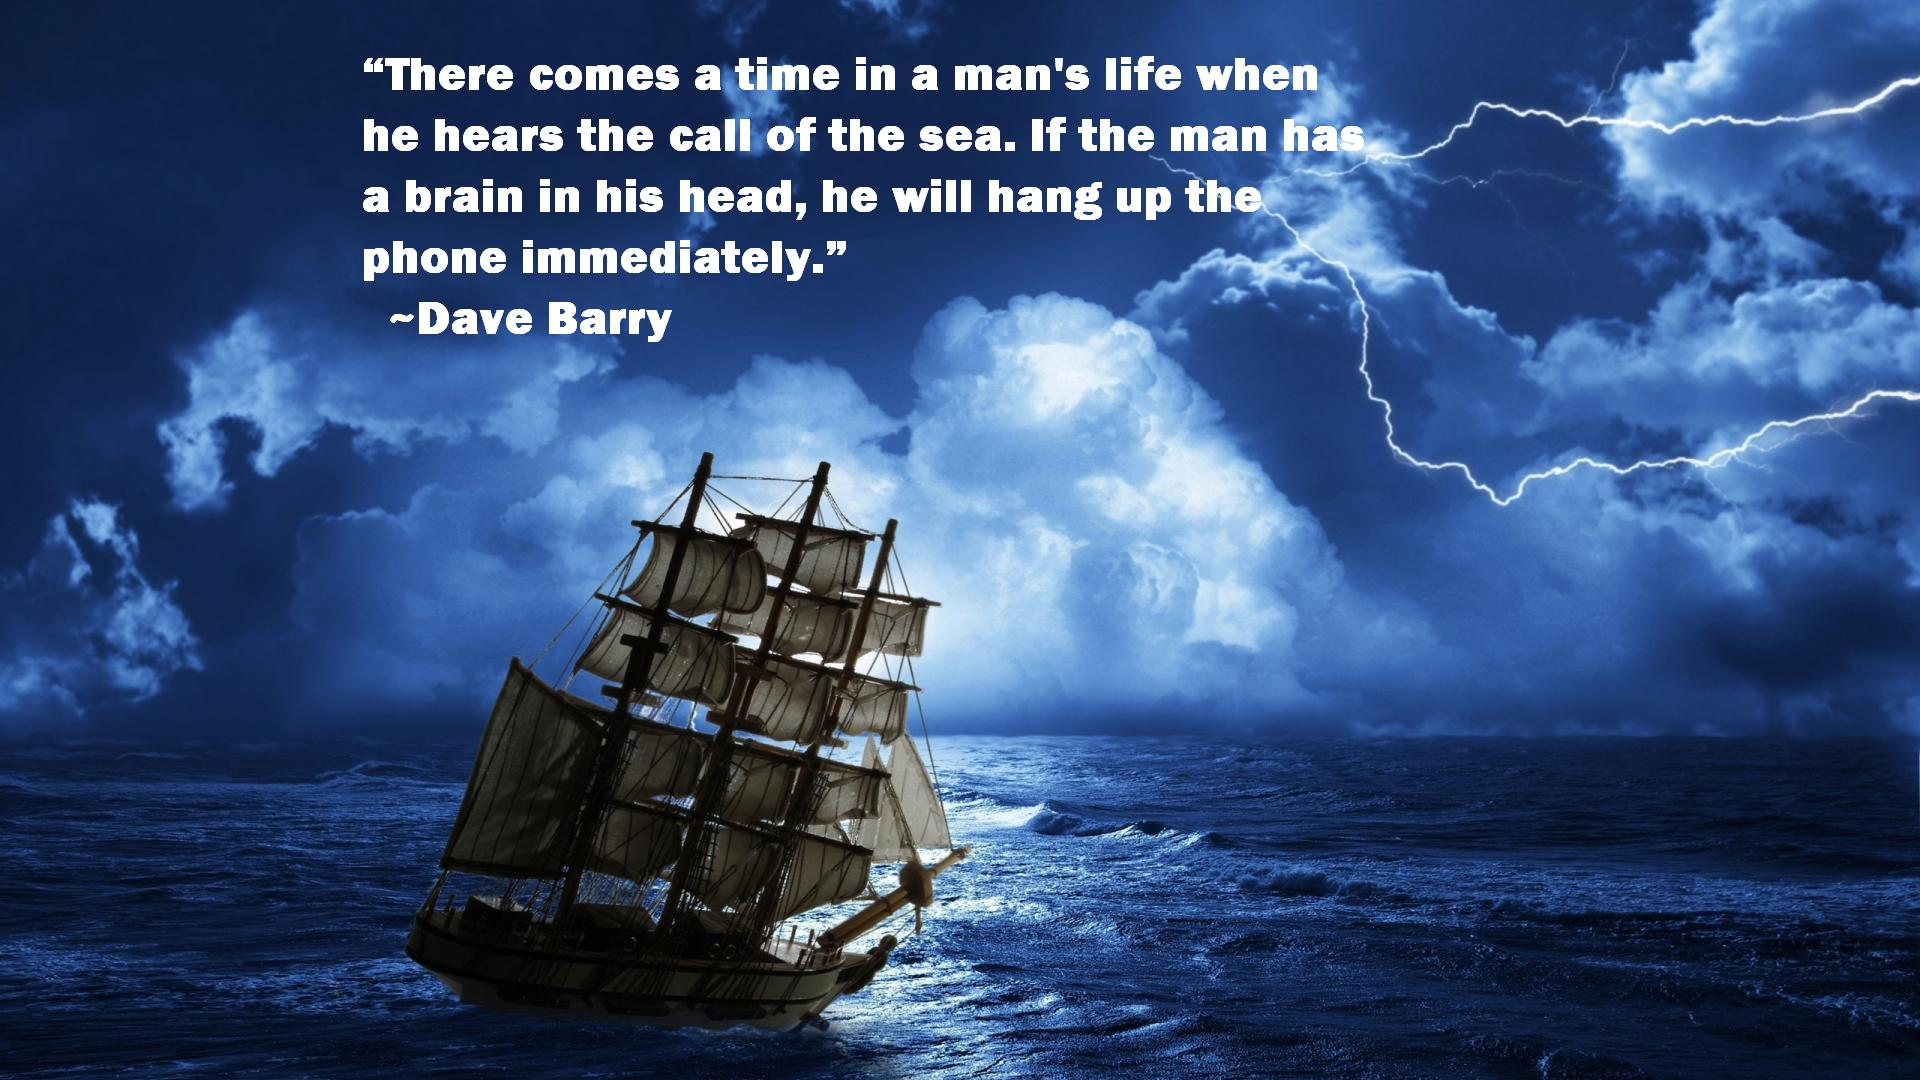 Quotes About Sailing And Life Dave Barry Quotes  Awesome Quotes About Life